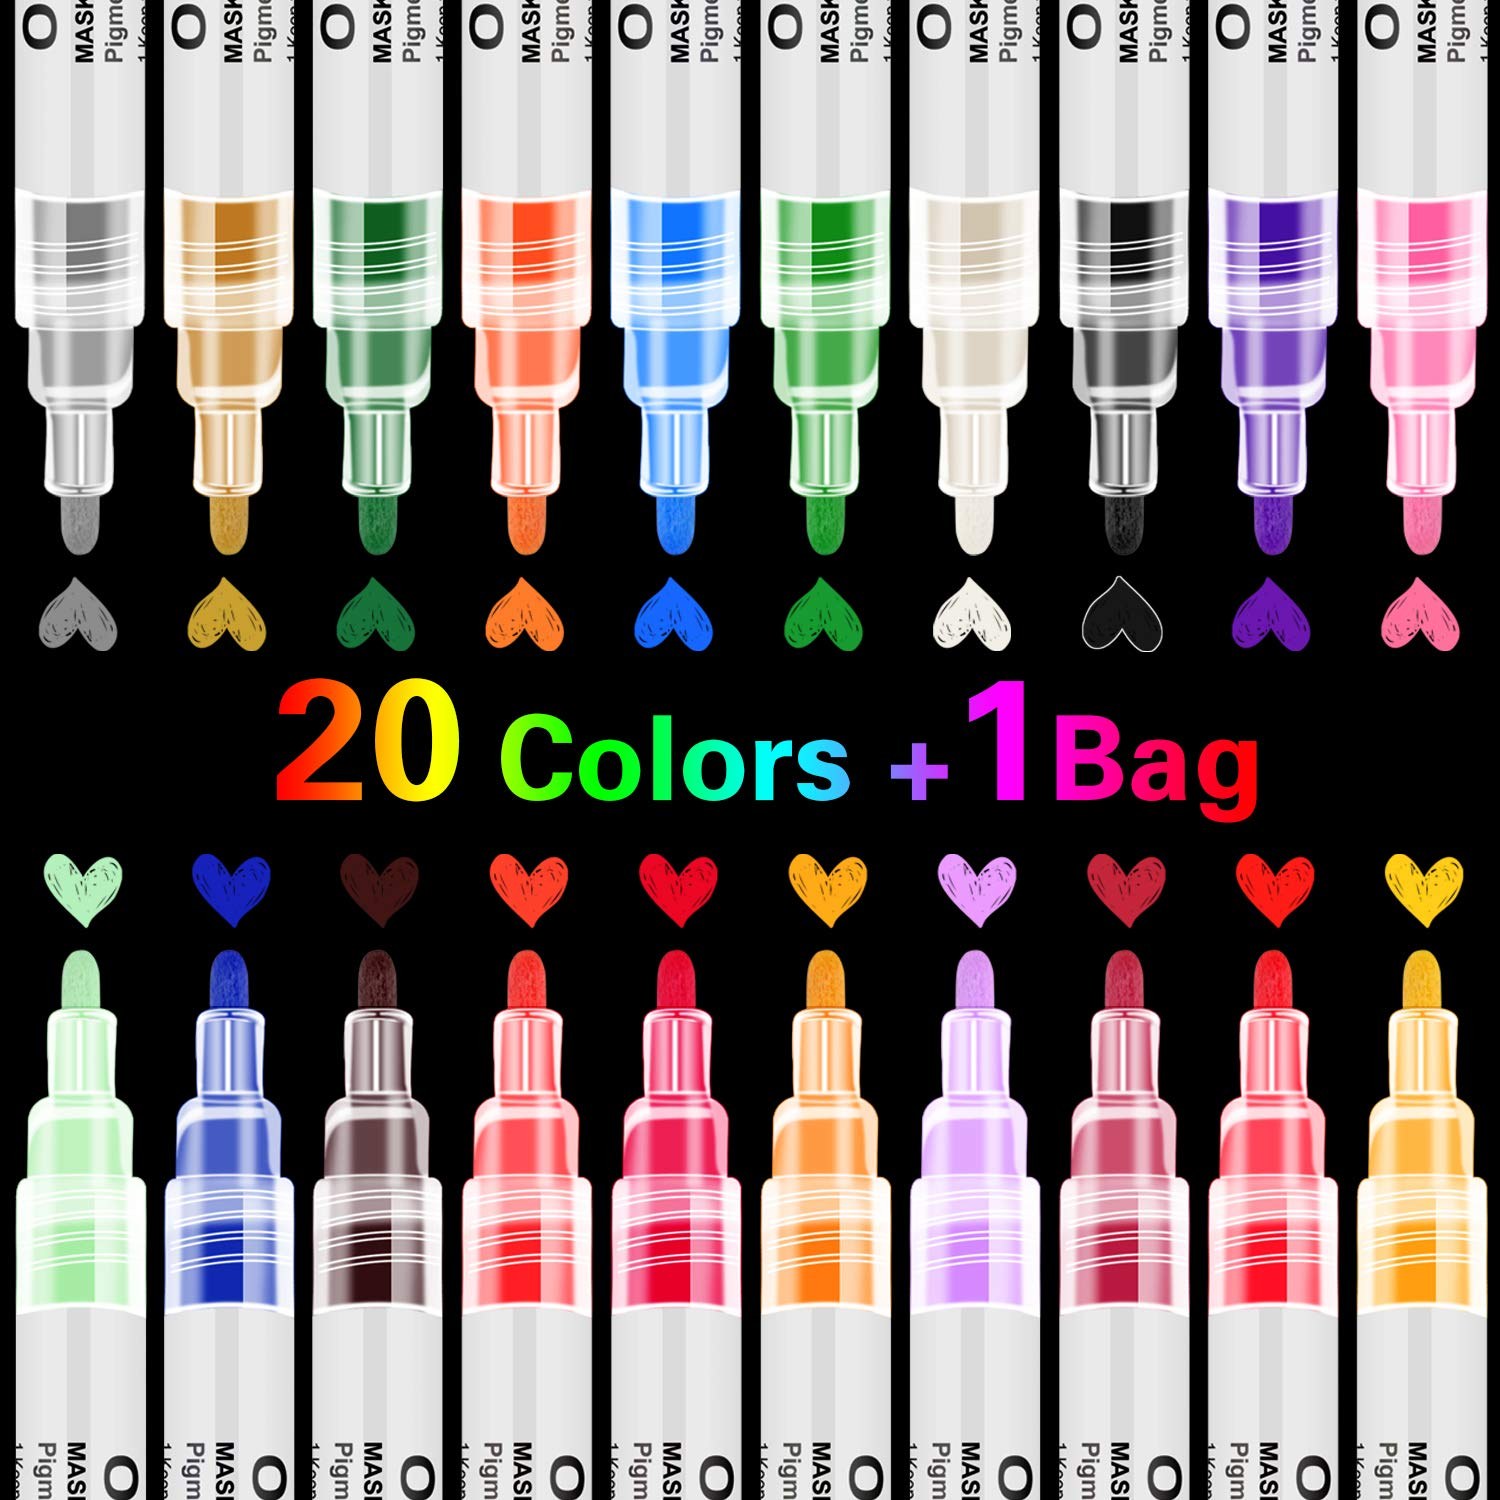 Acrylic Paint Marker Pens, OUSI 20 Paint Markers for Kids Adults Paint Pens for Rocks Painting Canvas Photo Album DIY Craft School Project Glass Ceramic Wood Metal Water Based Extra Fine Tip